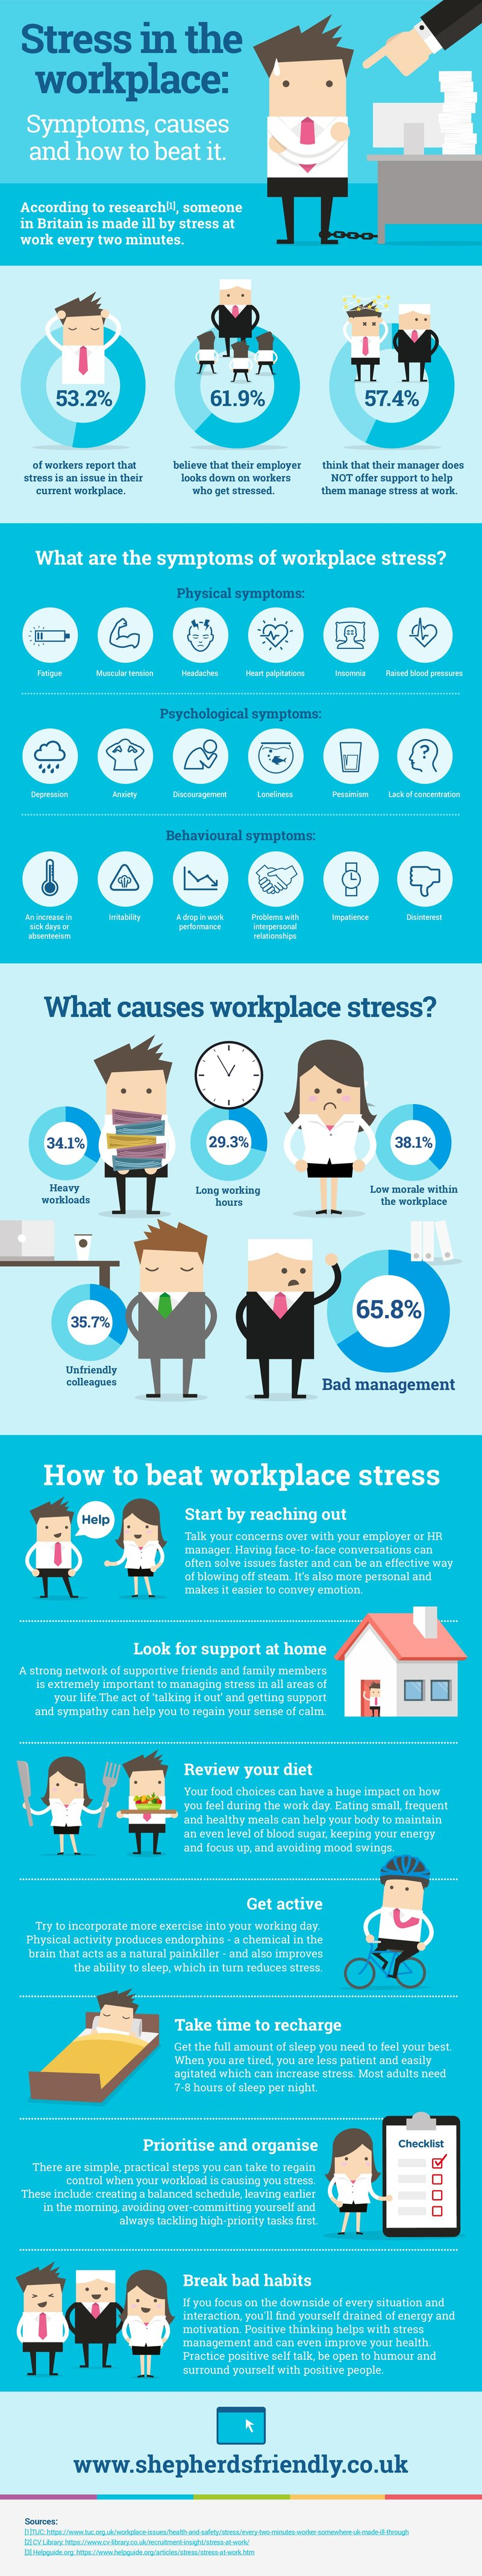 Stress at work: Symptoms, causes and how to beat it via Shepherds Friendly Society